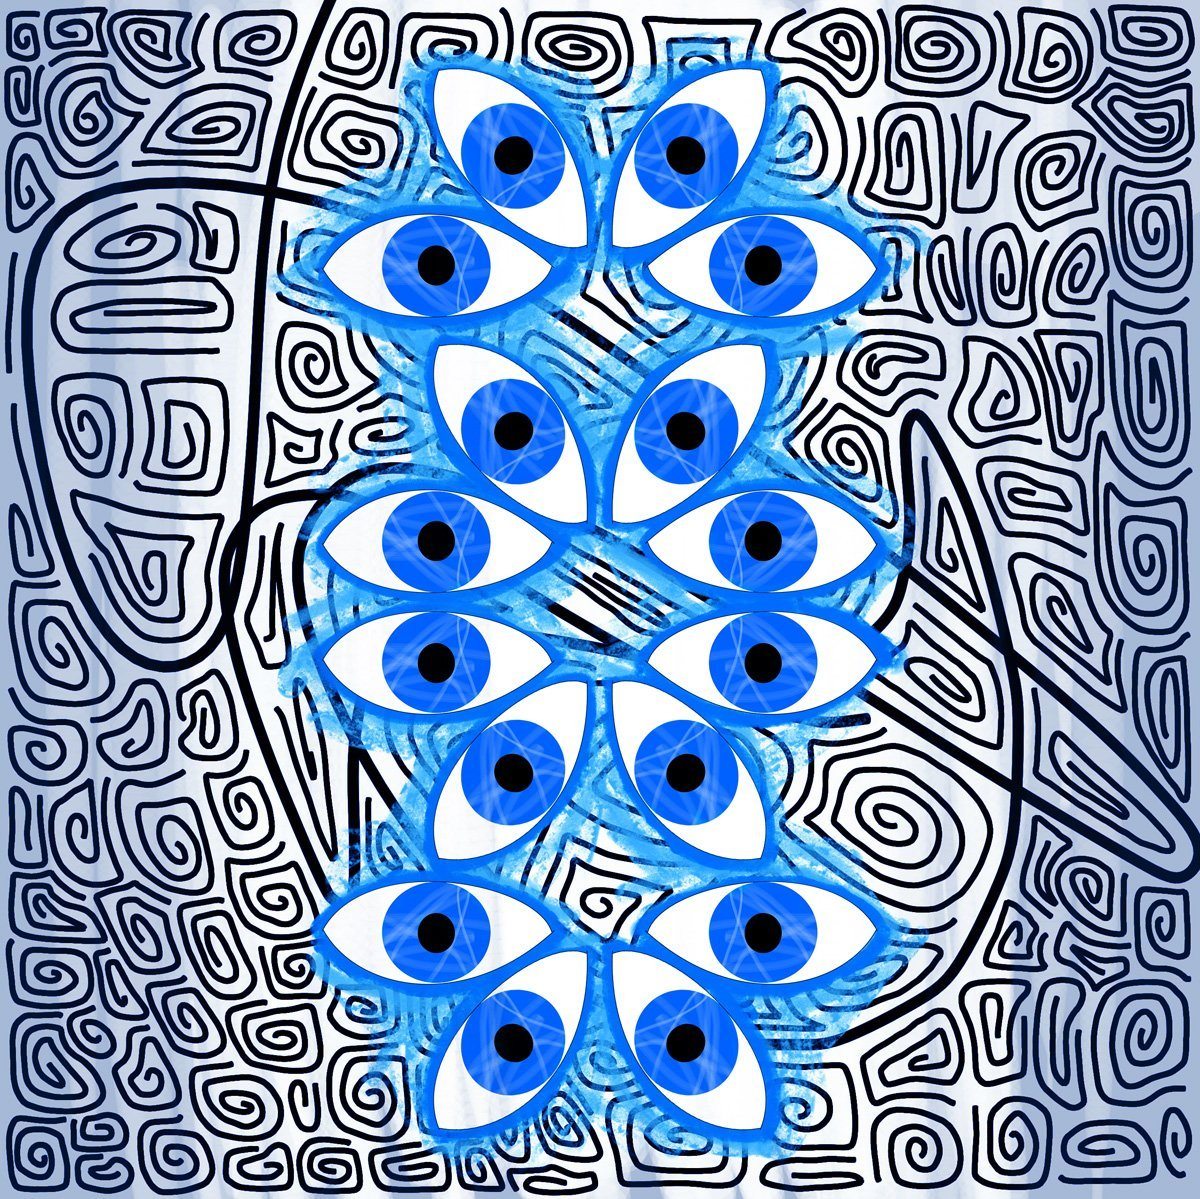 The image shows a piece of artwork by Jina Wallwork. It is a digital painting of eyes. Stylistically this piece of artwork has links with abstract art.